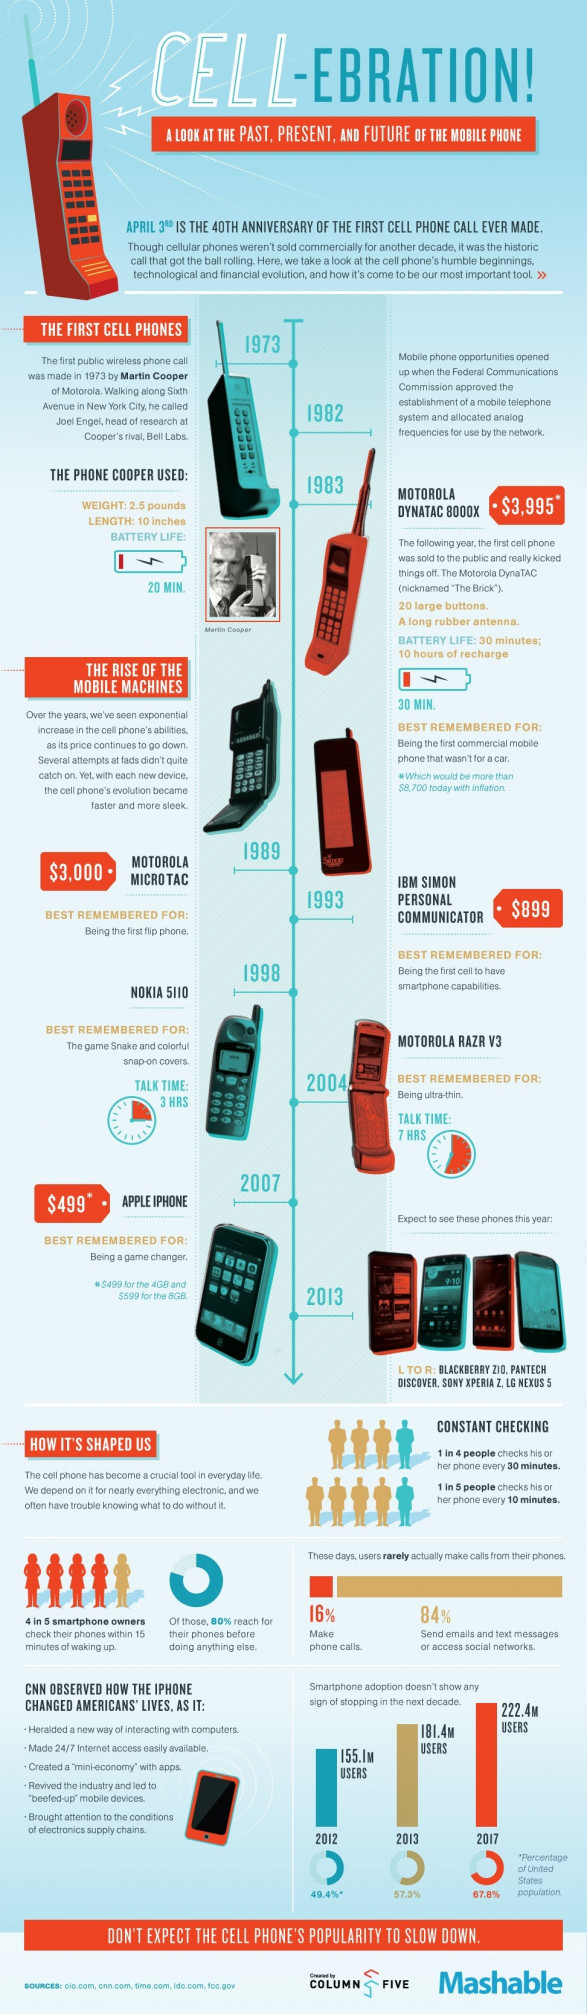 Cell-ebration! 40 Years of Cellphone History